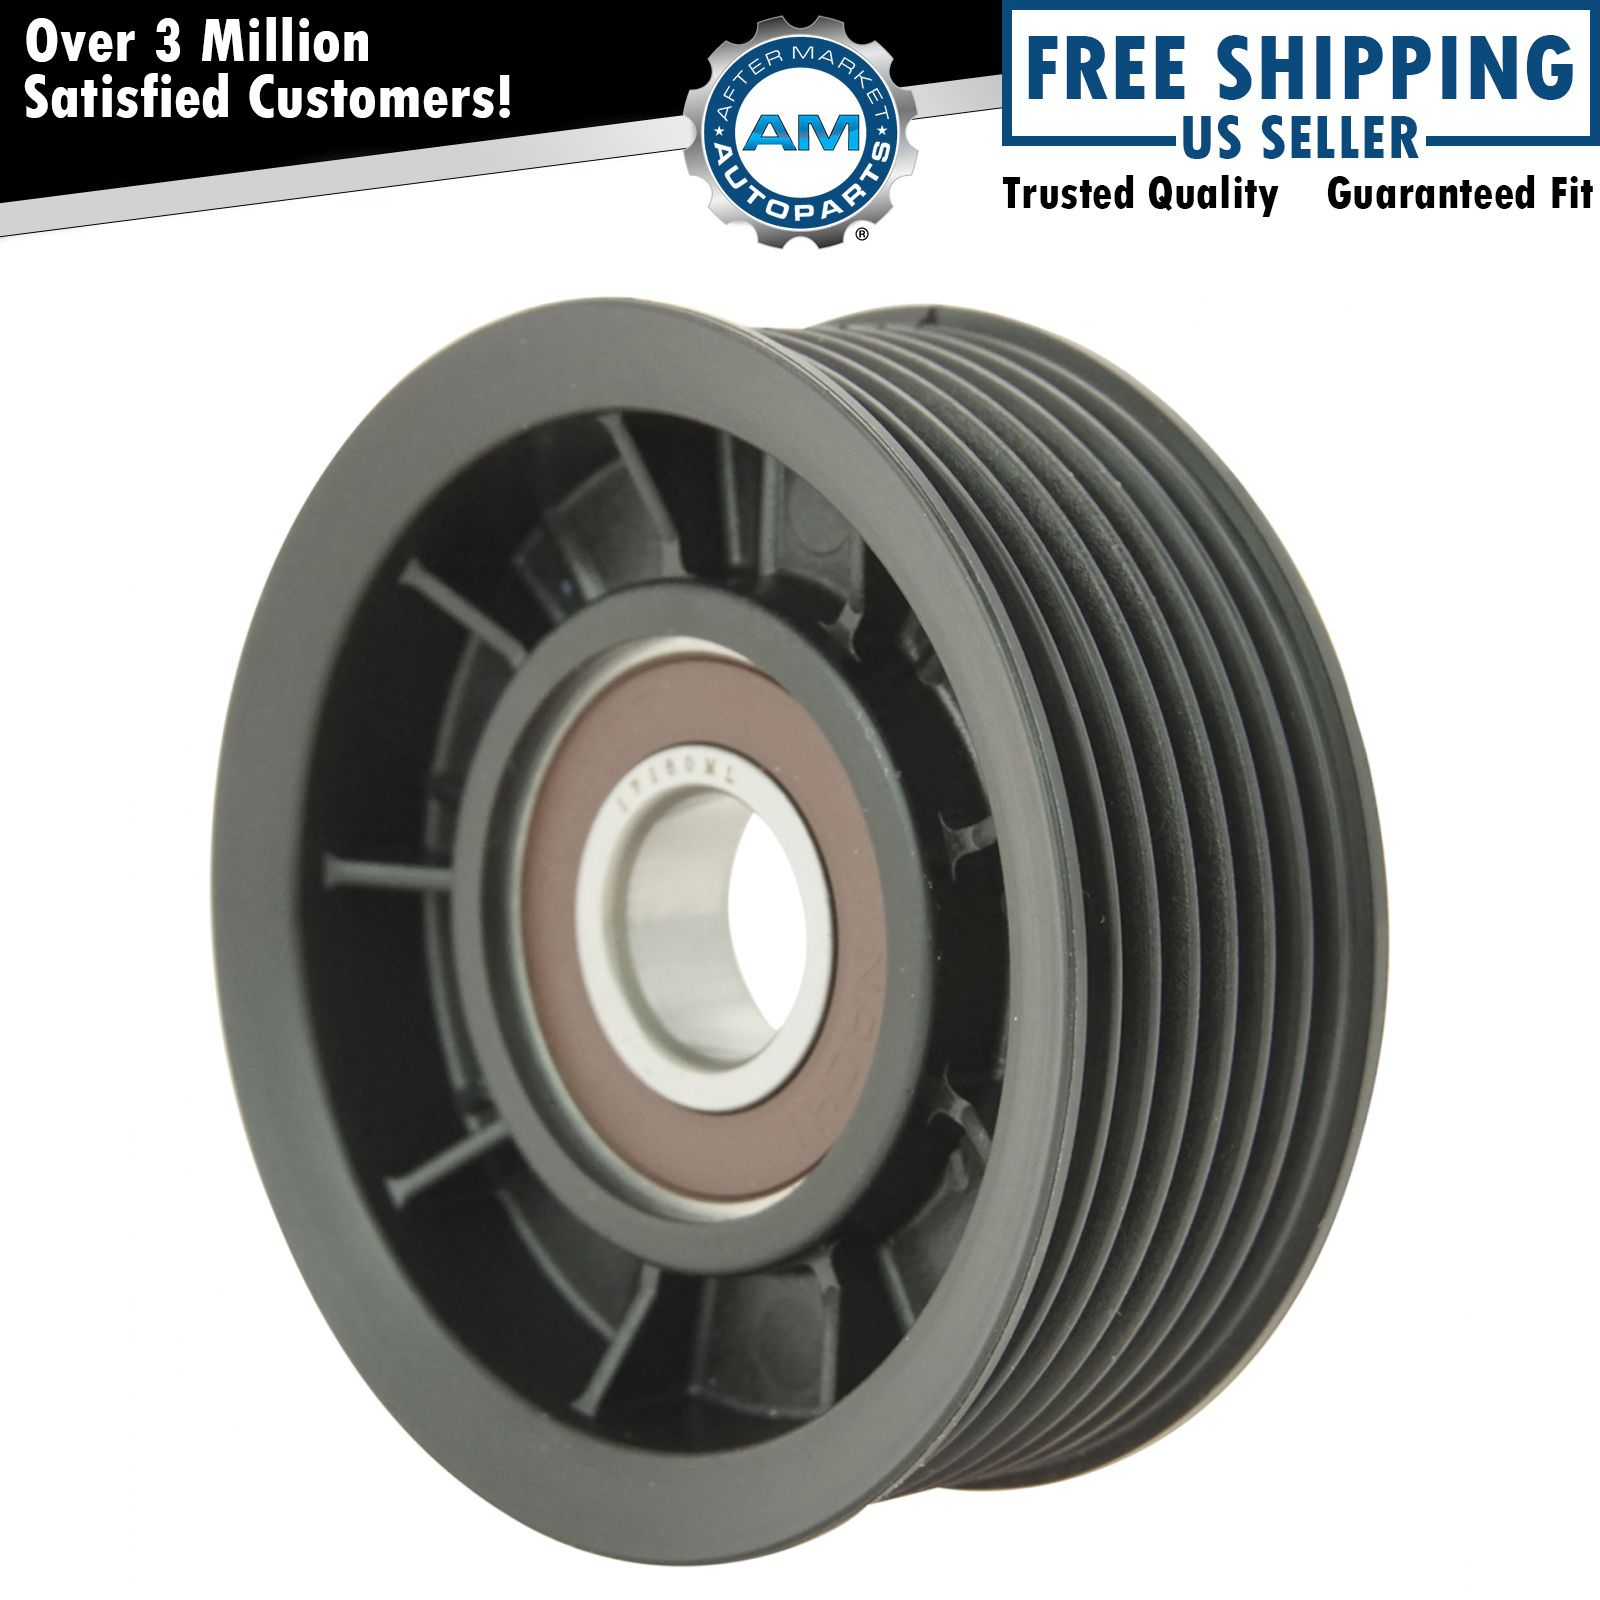 Hemi Serpentine Belt Idler Pulley Grooved For 03 08 Dodge Ram Pickup Truck 5 7l Ebay